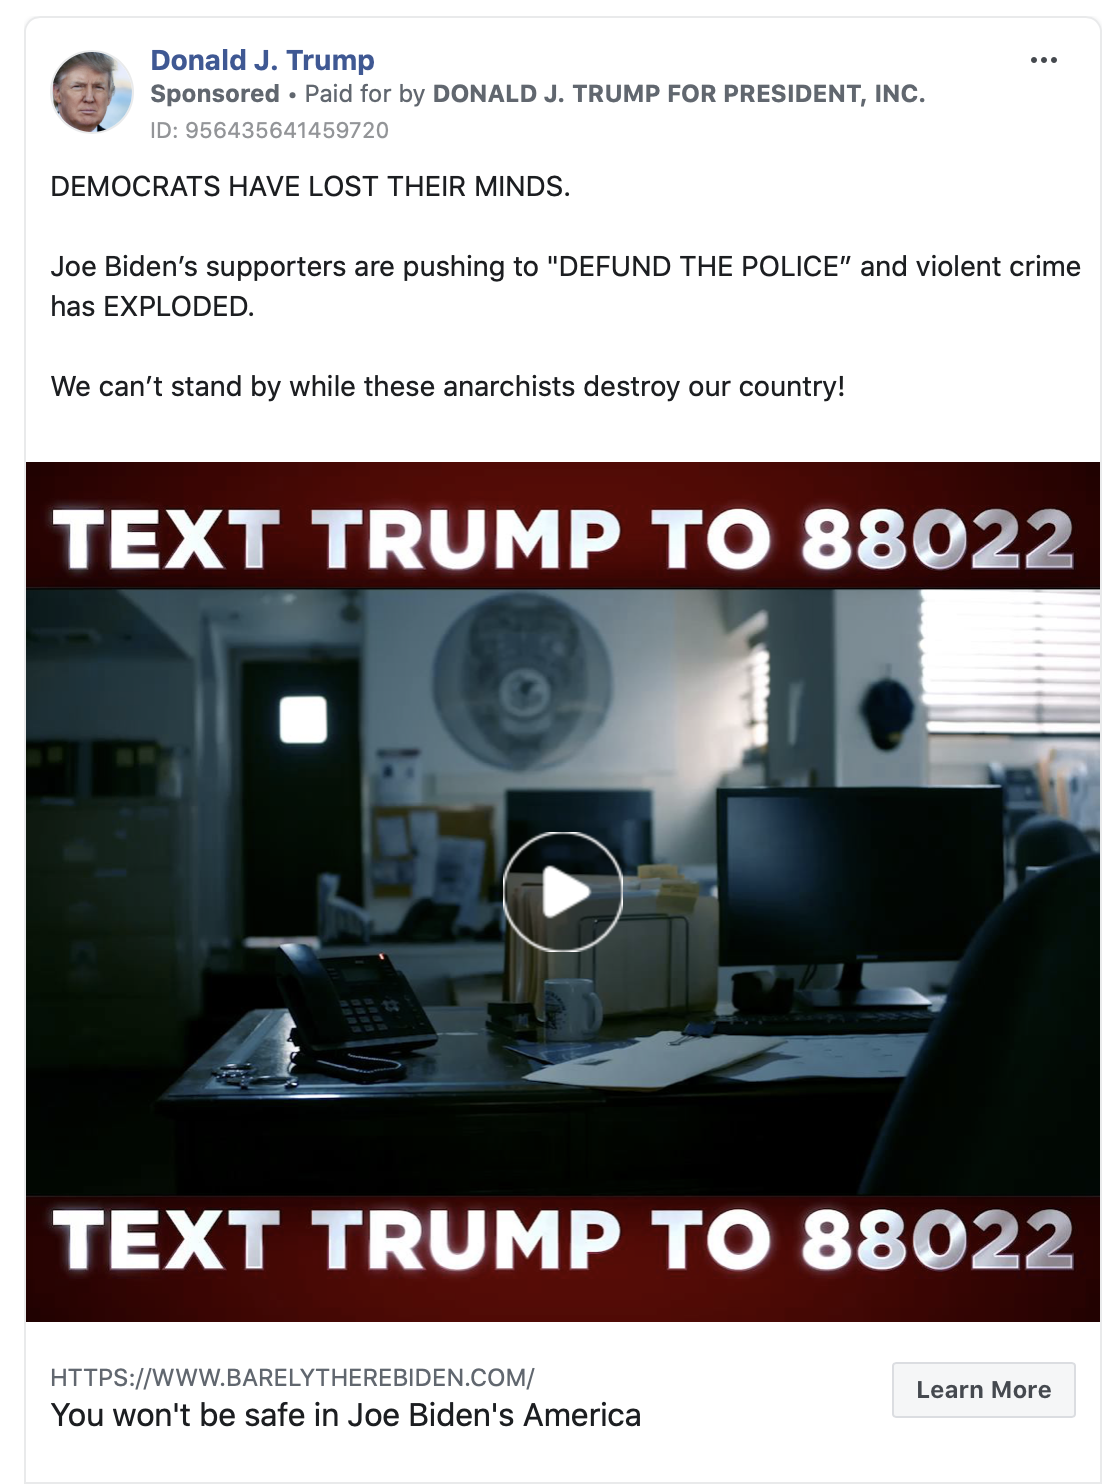 """Image of Trump ad. The ad includes a brief video clip of images of violence and looting with accompanying text that says """"TEXT TRUMP TO 88022."""" Above the image, the ad includes the following message: """" DEMOCRATS HAVE LOST THEIR MINDS. Joe Biden's supporters are pushing to """"DEFUND THE POLICE"""" and violent crime has EXPLODED. We can't stand by while these anarchists destroy our country! Learn more about why Sleepy Joe is DANGEROUS for America."""" Below the image is the caption """"You won't be safe in Joe Biden's America"""" with a link to a """"barelytherebiden.com."""""""